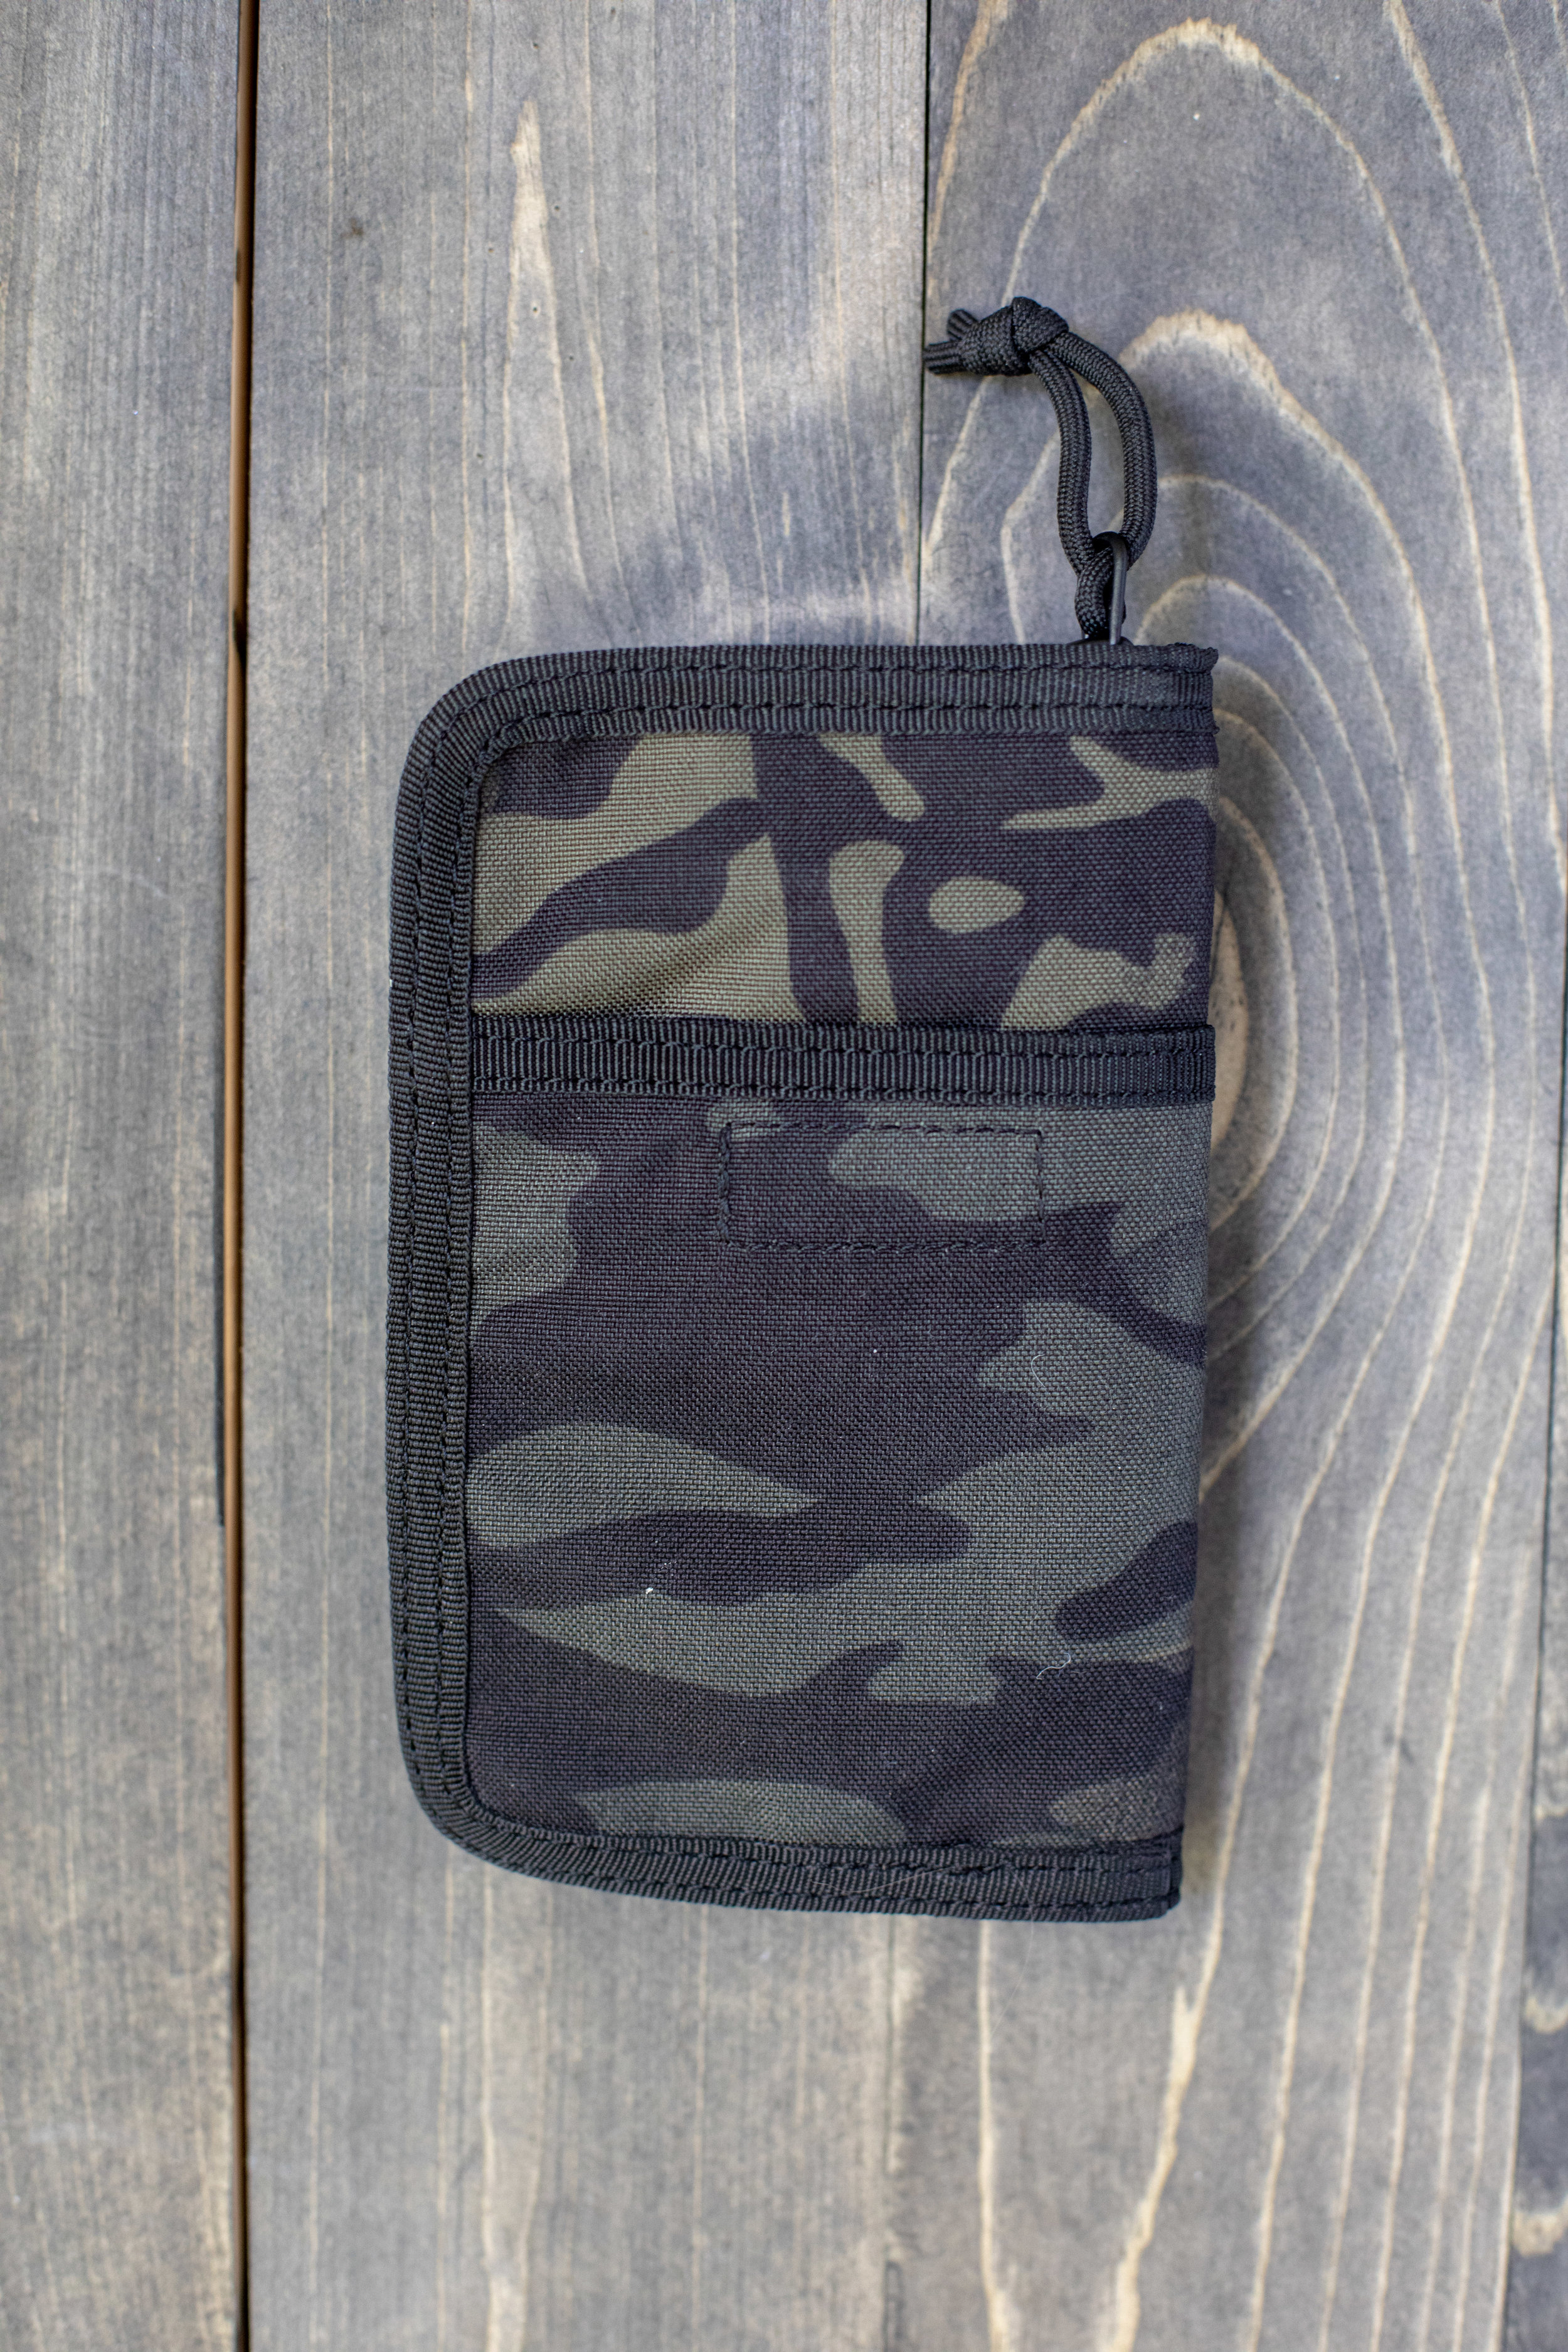 The outside: - The front includes a pocket divided in two. The back of the wallet includes a pocket with a velcro closure.